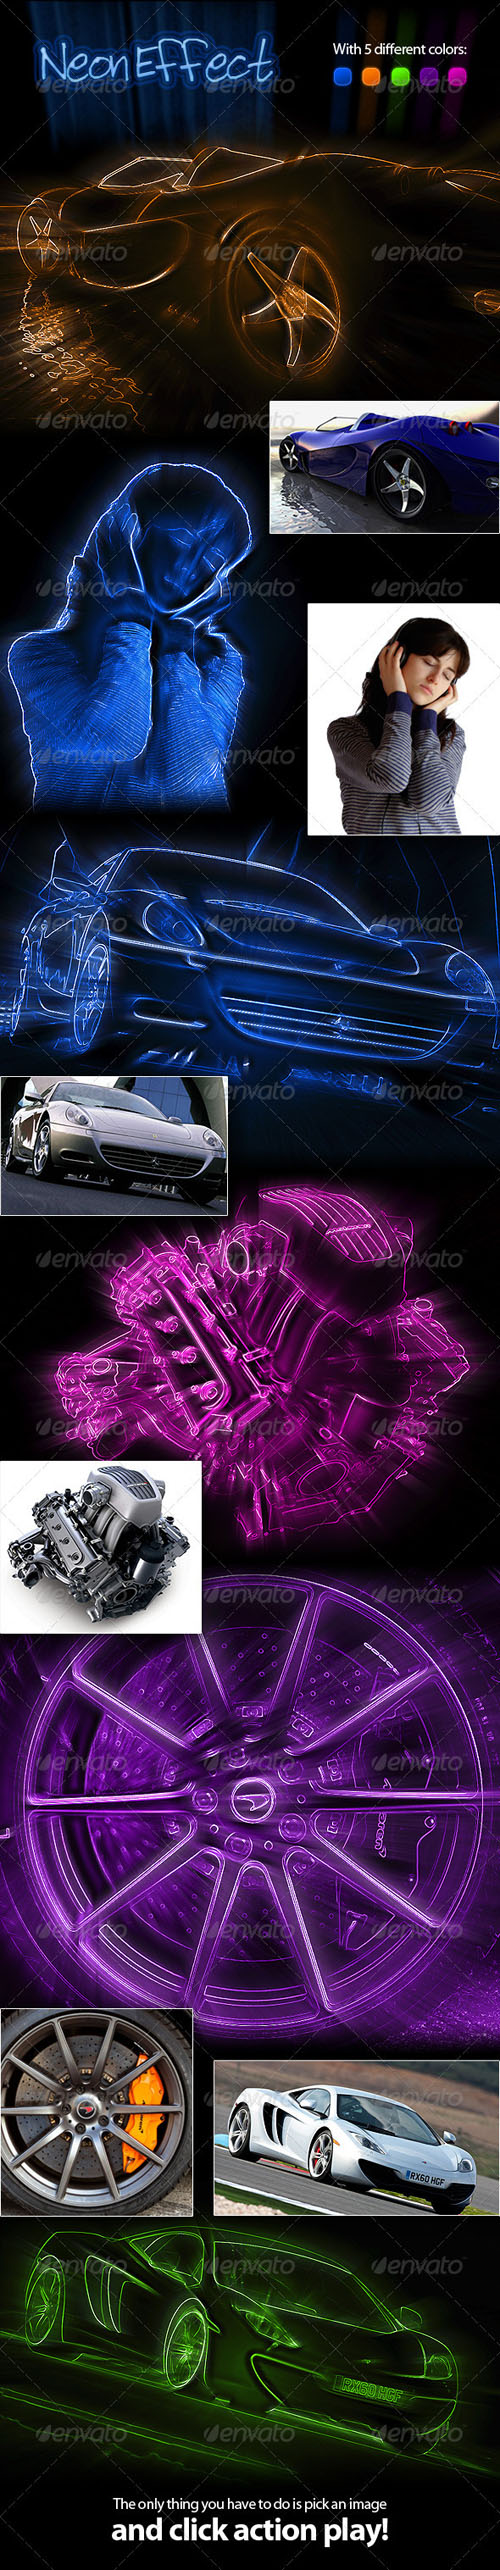 GraphicRiver - Neon Effect Photoshop Action